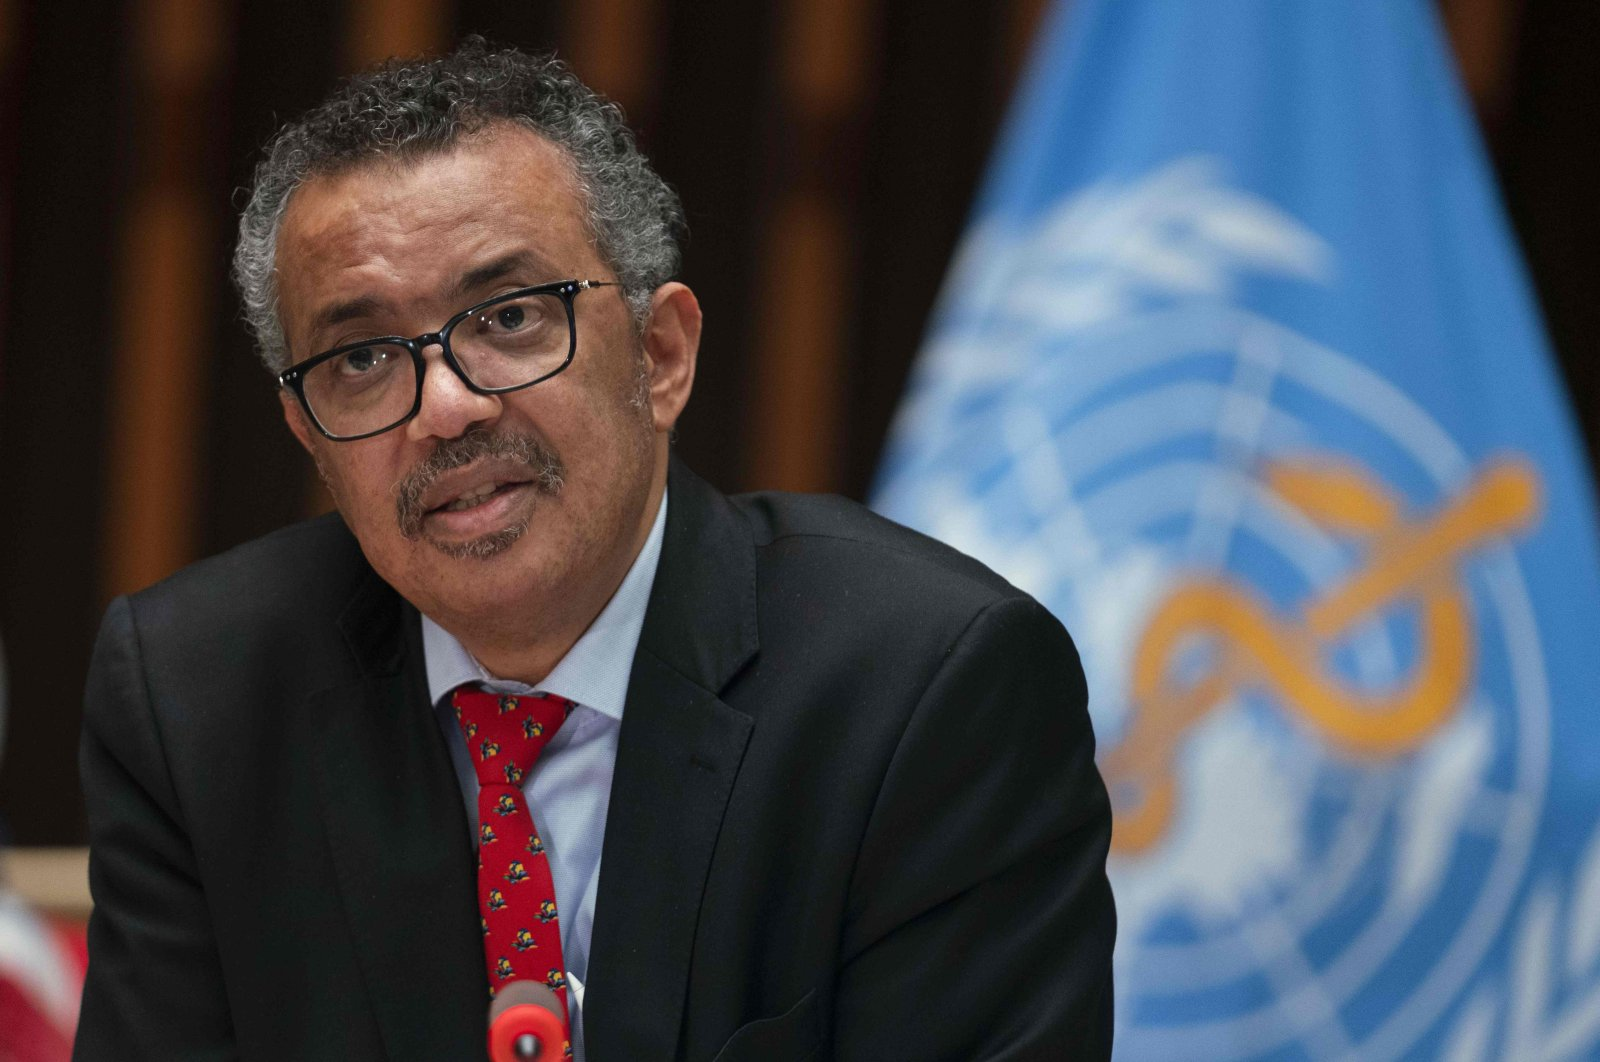 WHO Director-General Tedros Adhanom Ghebreyesus attending the 147th session of the WHO Executive Board held virtually by videoconference, amid the COVID-19 pandemic, Geneva, Switzerland, May 22, 2020 (Christopher Black/ World Health Organization via AFP Photo)